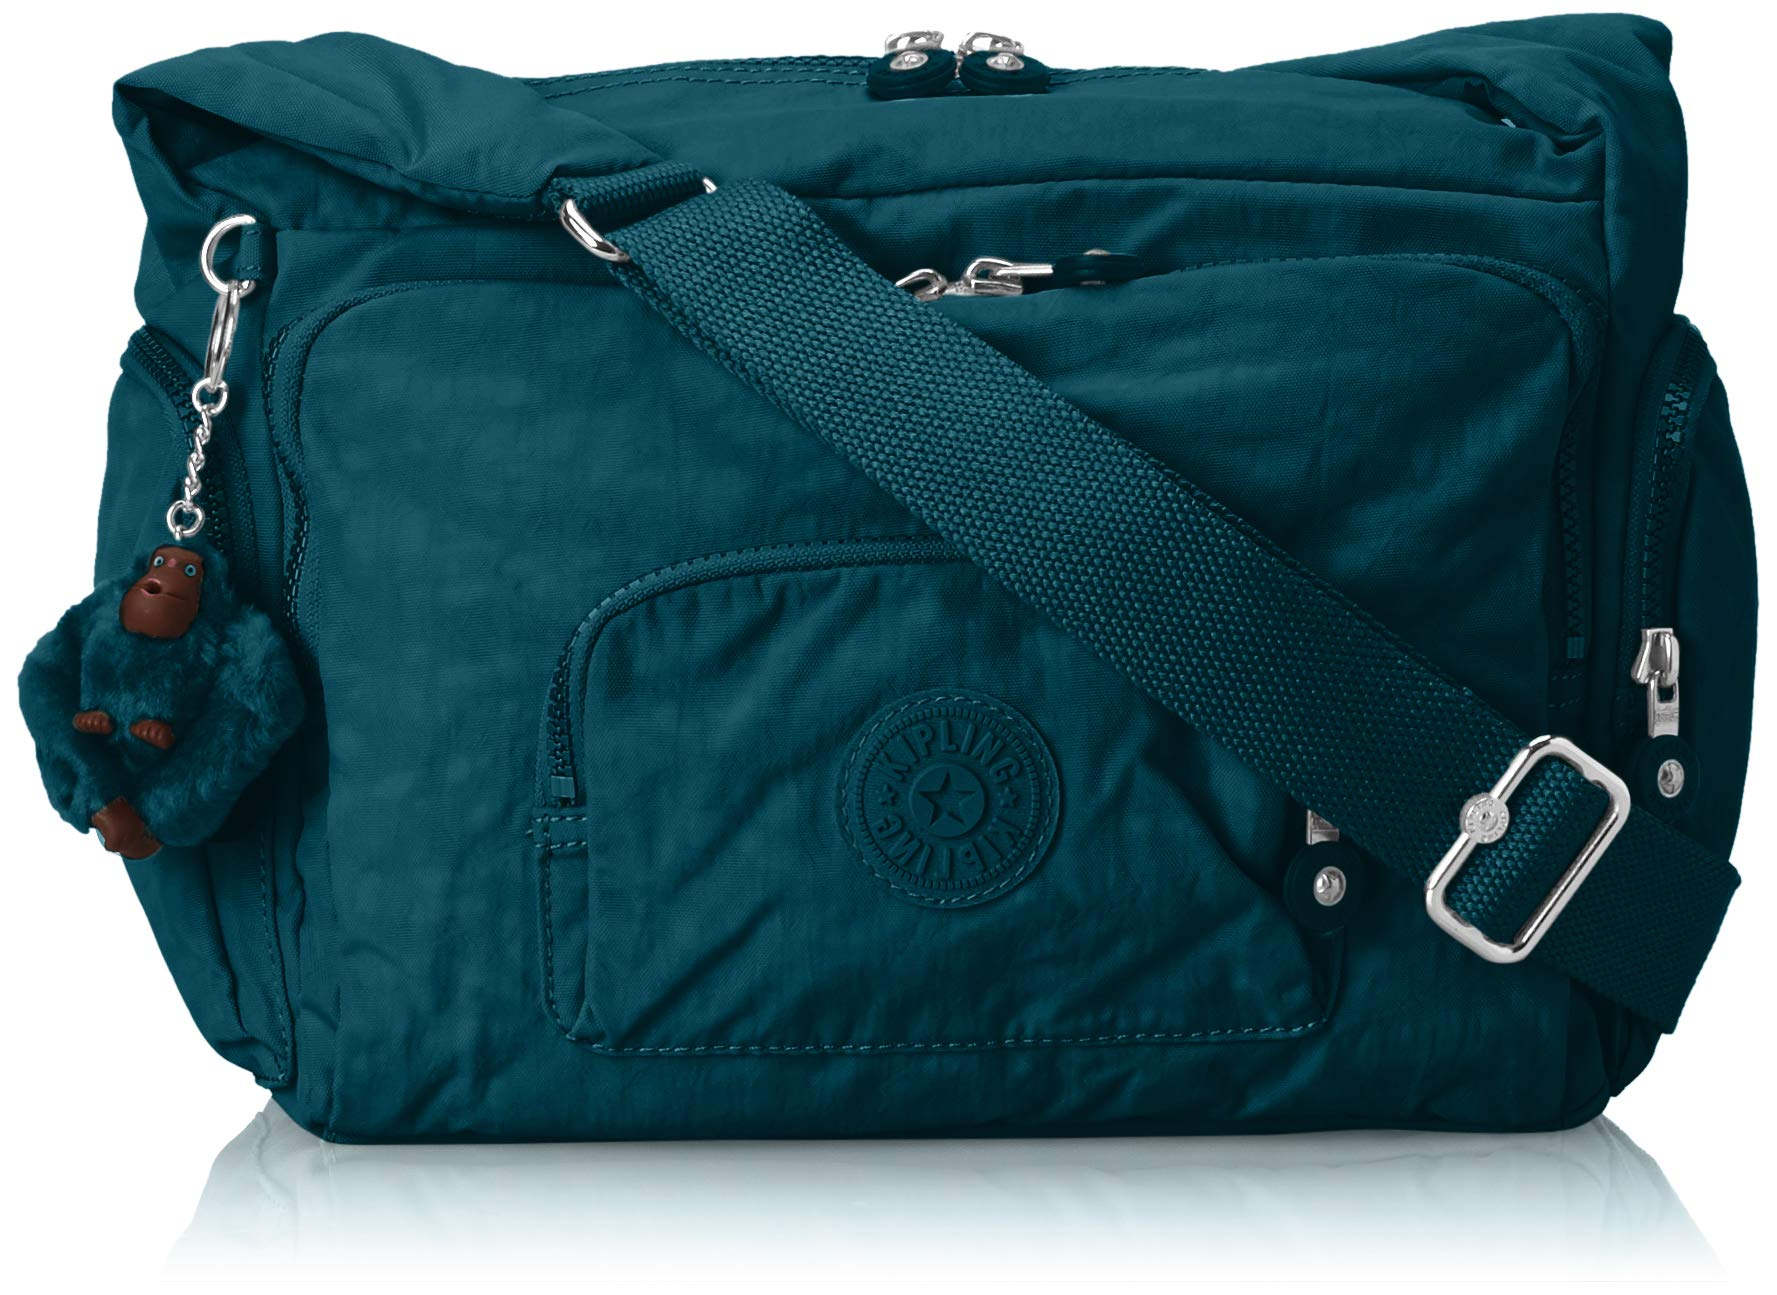 Kipling Erica Solid Crossbody Bag,  Gleaming Green, One Size